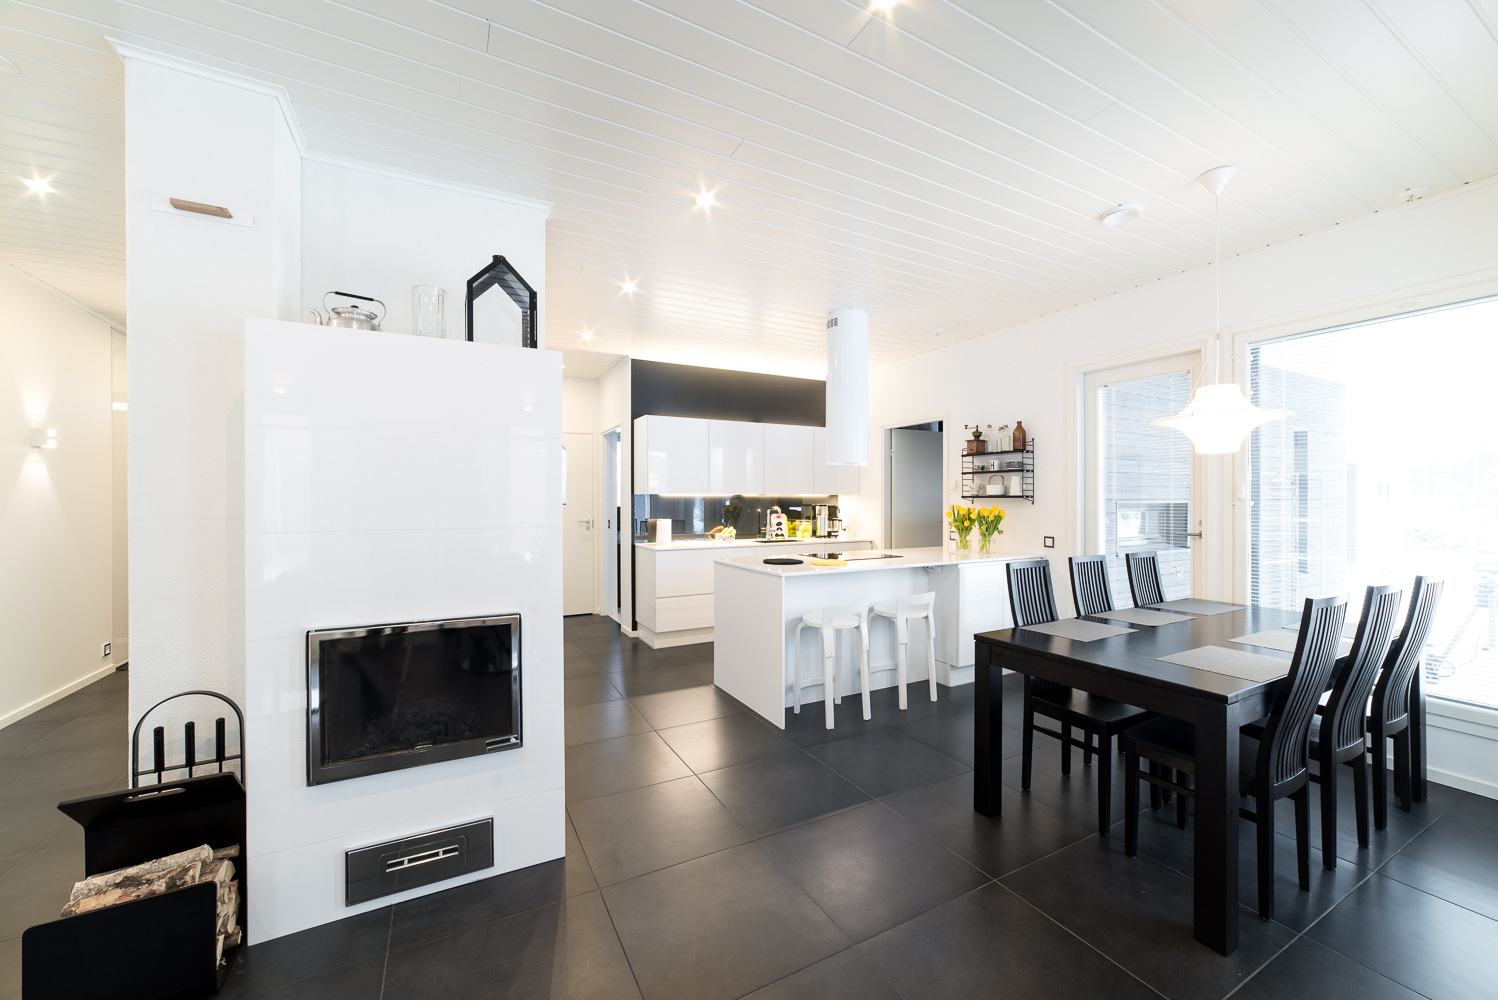 1000+ images about Keittiö on Pinterest  White kitchens